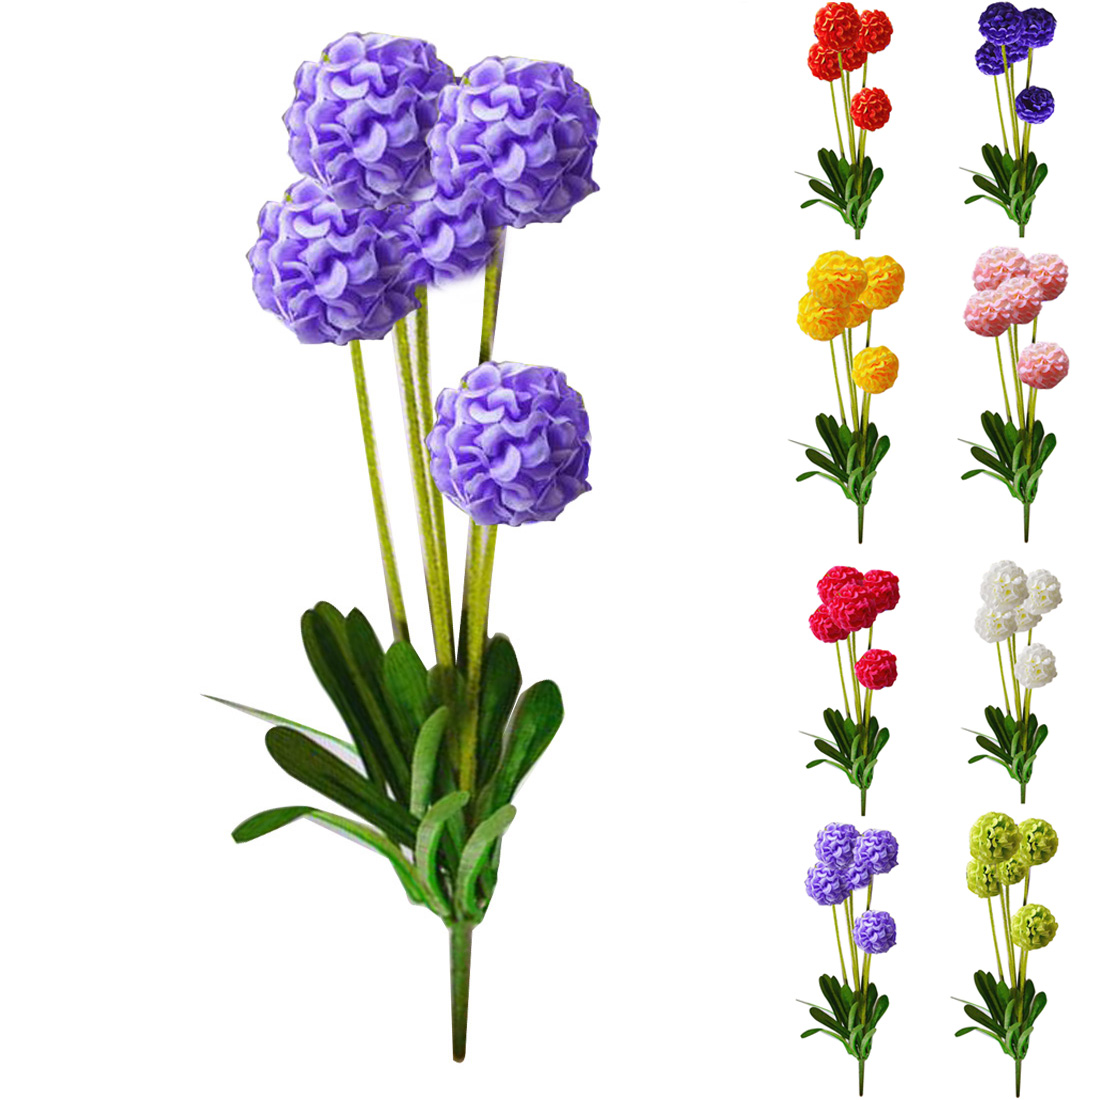 New Style European Country 5 Heads Small Hydrangea Artificial Flowers Lavender Flower Ball Home Decor Silk